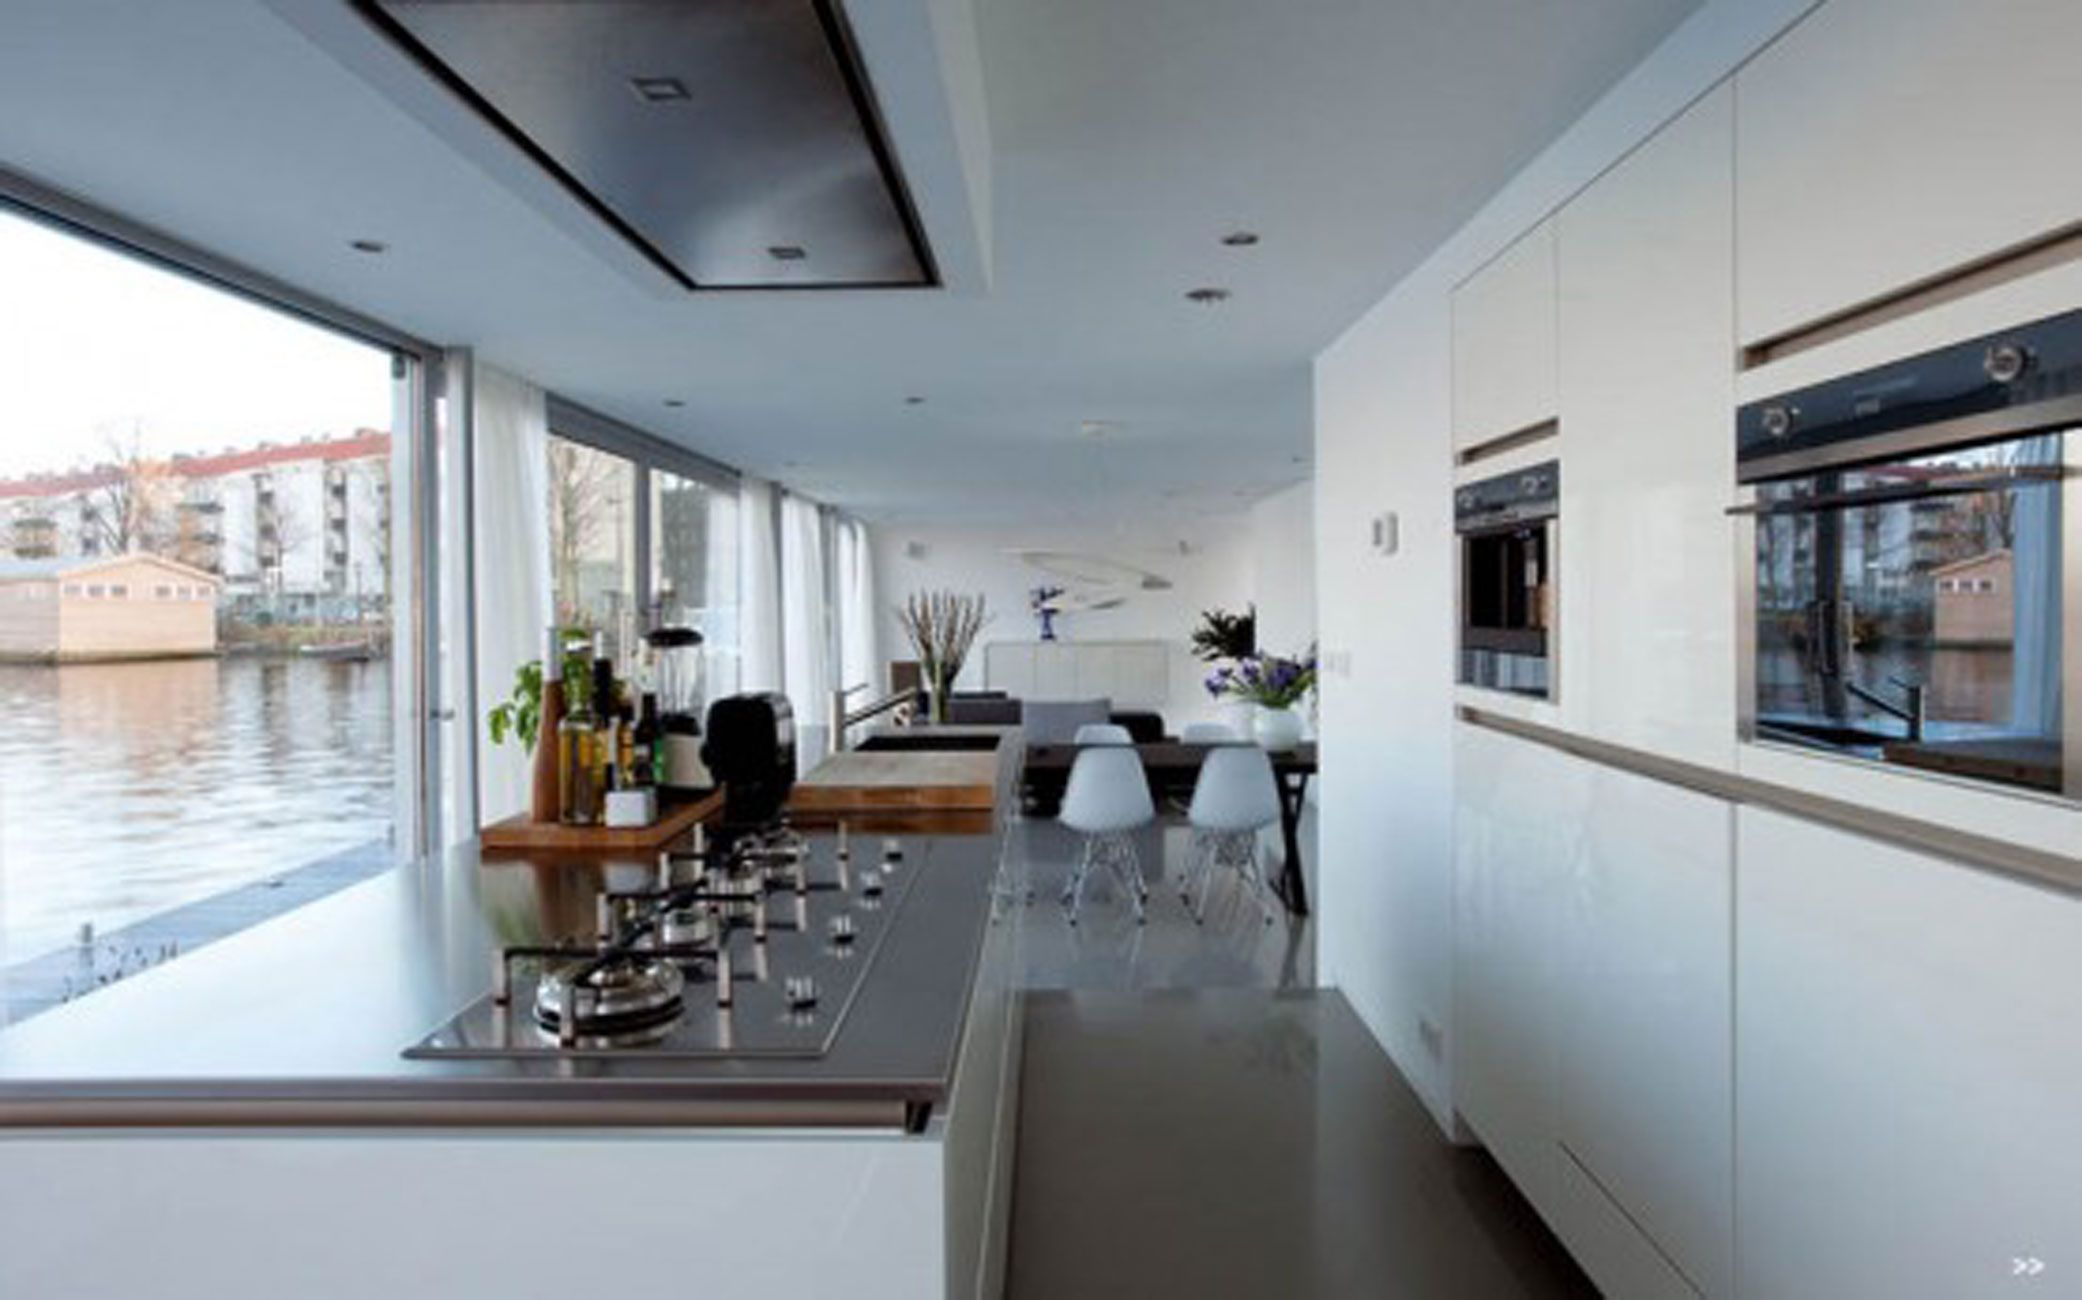 Watervilla De Omval Of Amstel River Floating House Kitchen | A HB ...